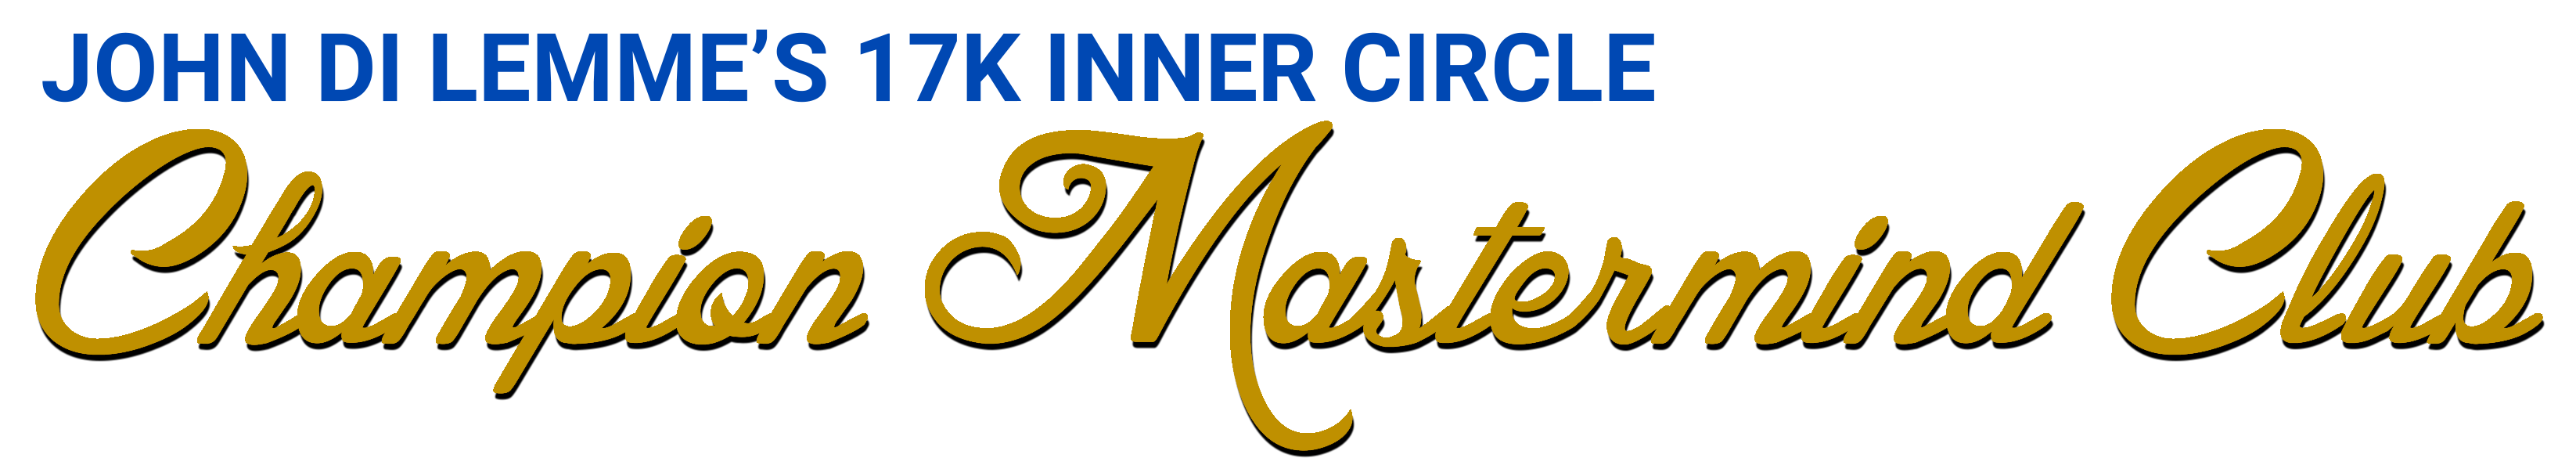 17K Inner Circle Champion Mastermind Club Logo